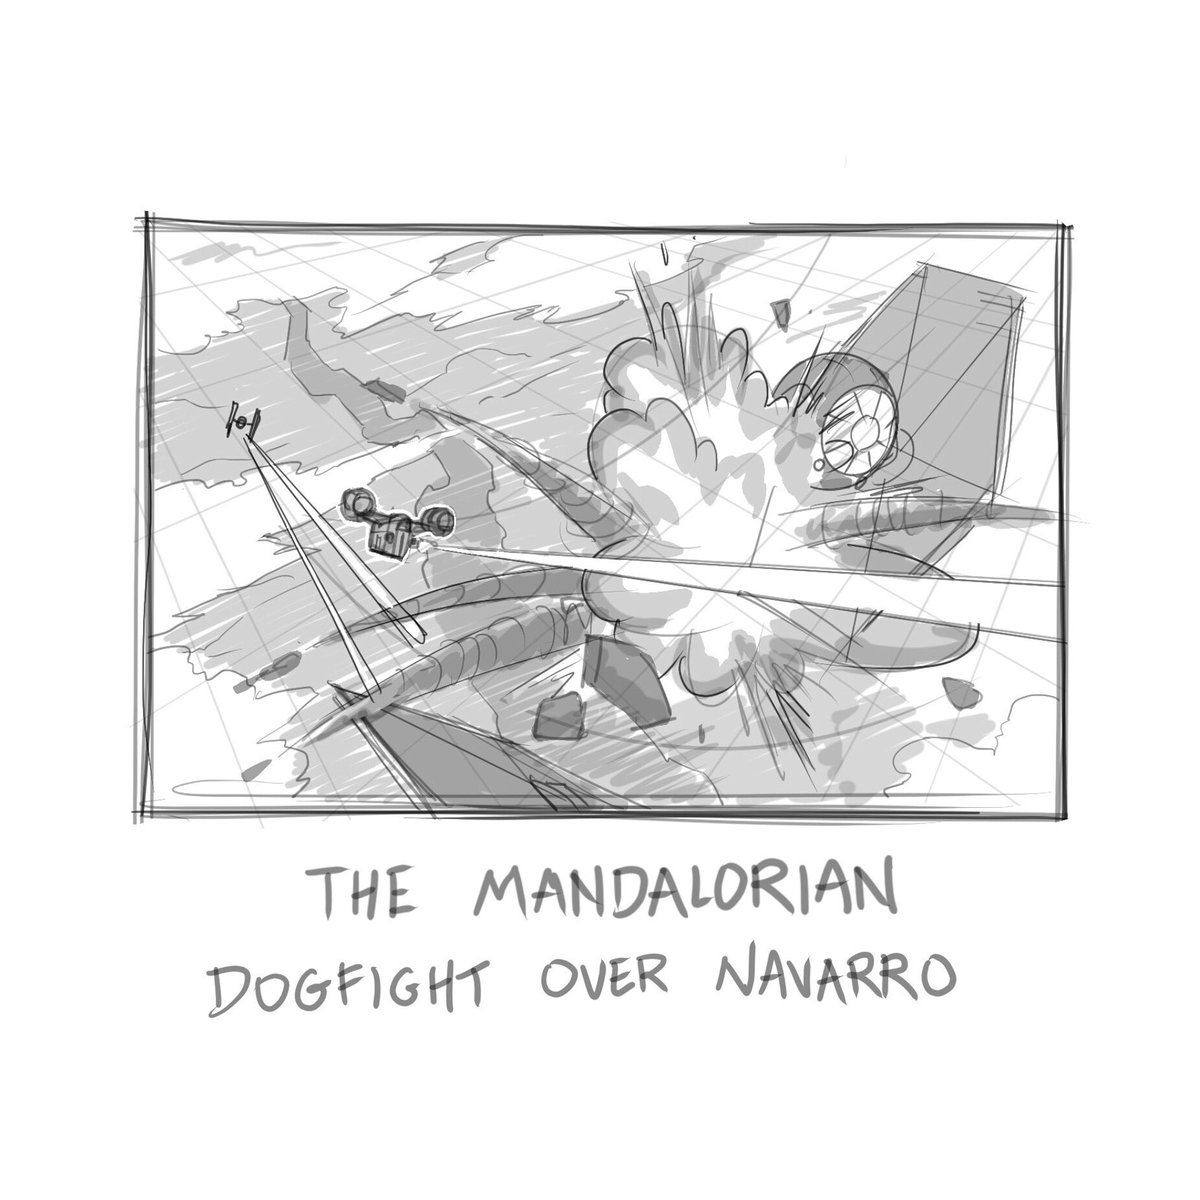 Rough thumbnail sketch for my next Mandalorian piece, inspired by the awesome dogfight scene in season 2, episode 4 😁 Stay tuned for more and hope everyone had a good and safe Thanksgiving #themandalorian #razorcrest #tiefighters #thisistheway #ipadpro #procreate #starwars #art https://t.co/SziWIUwpeG